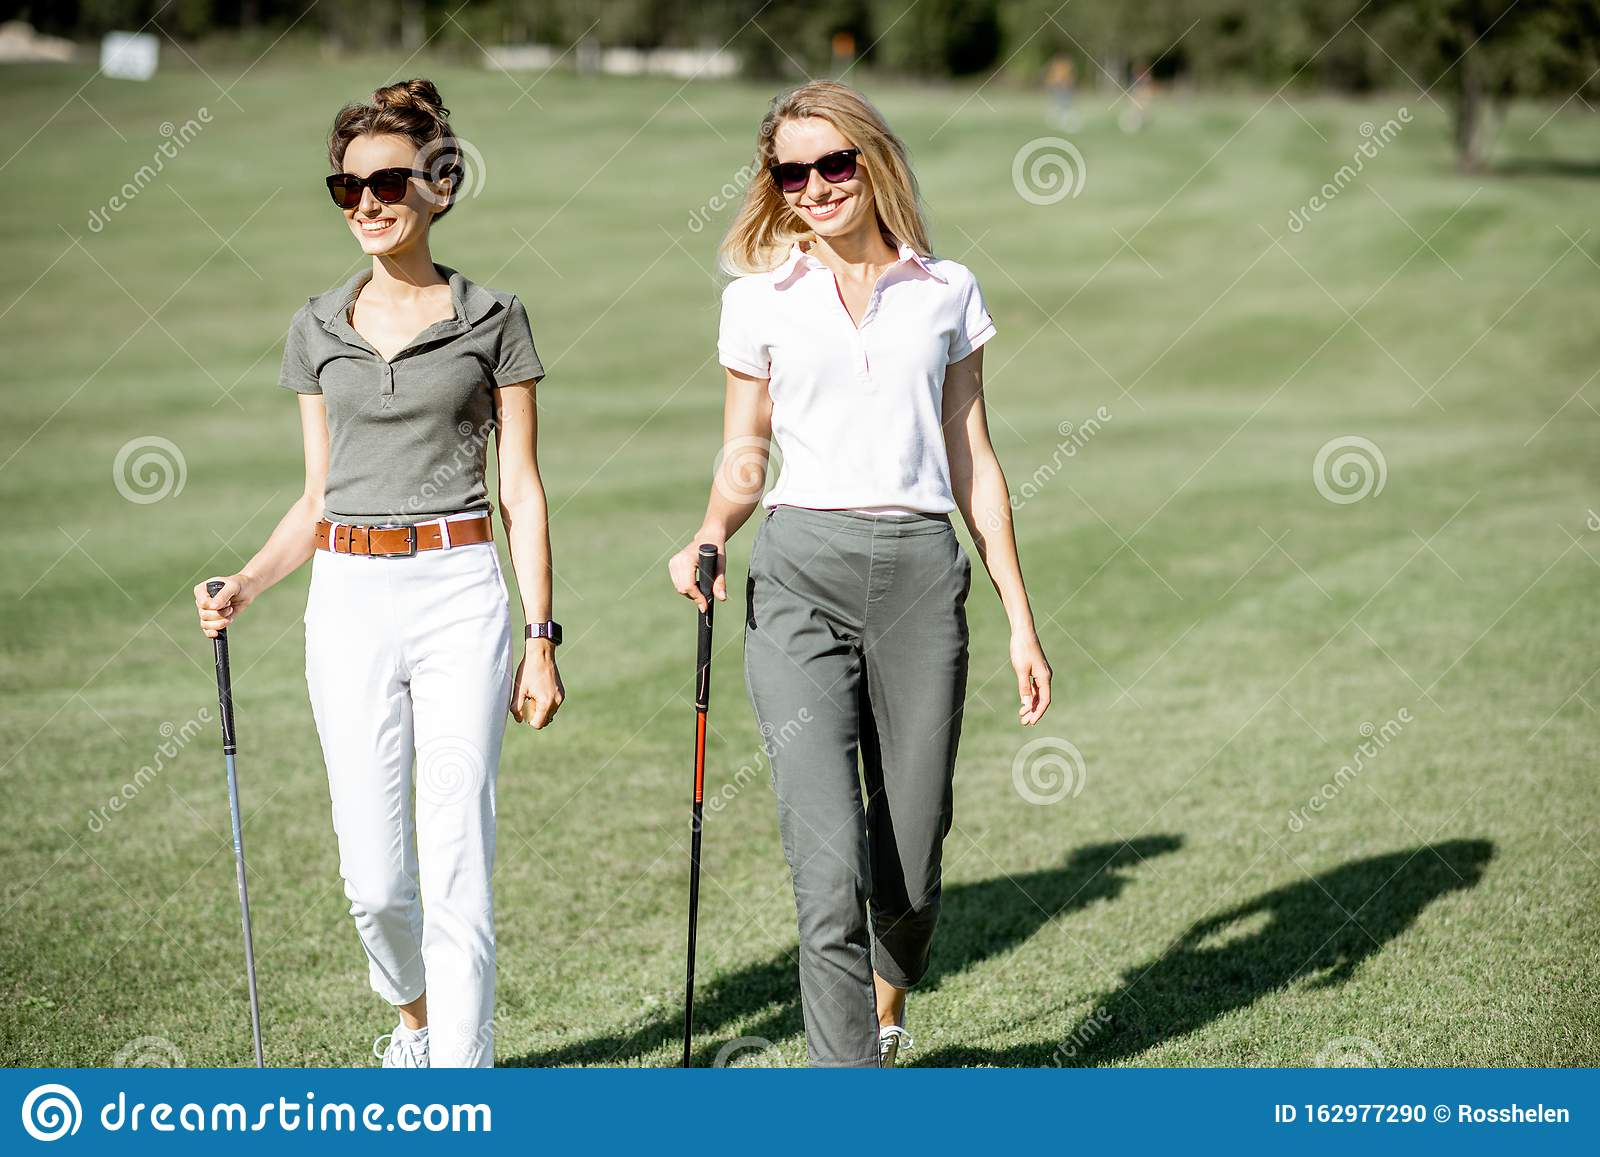 Female Friends On A Golf Course Stock Photo - Image of